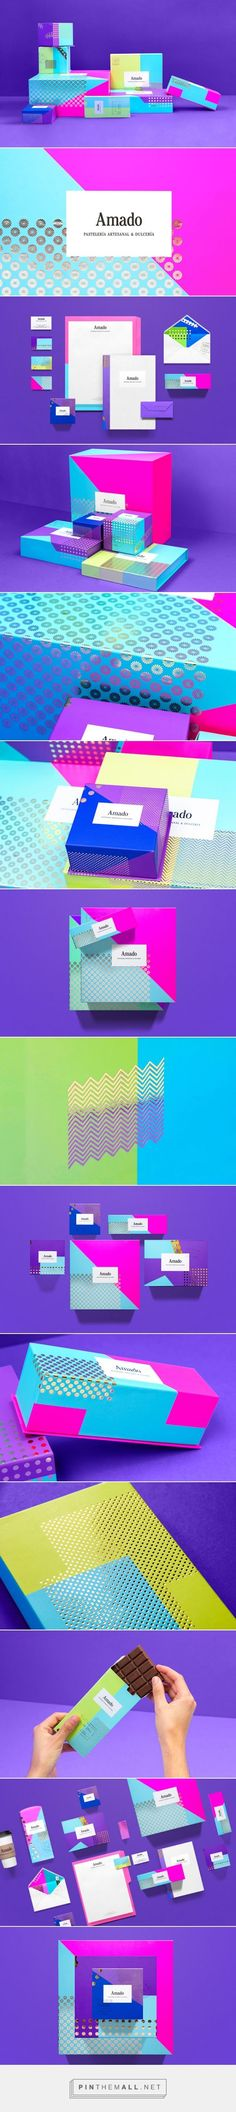 Amado by Hyatt #packaging designed by Anagrama - http://www.packagingoftheworld.com/2015/01/amado-by-hyatt.html